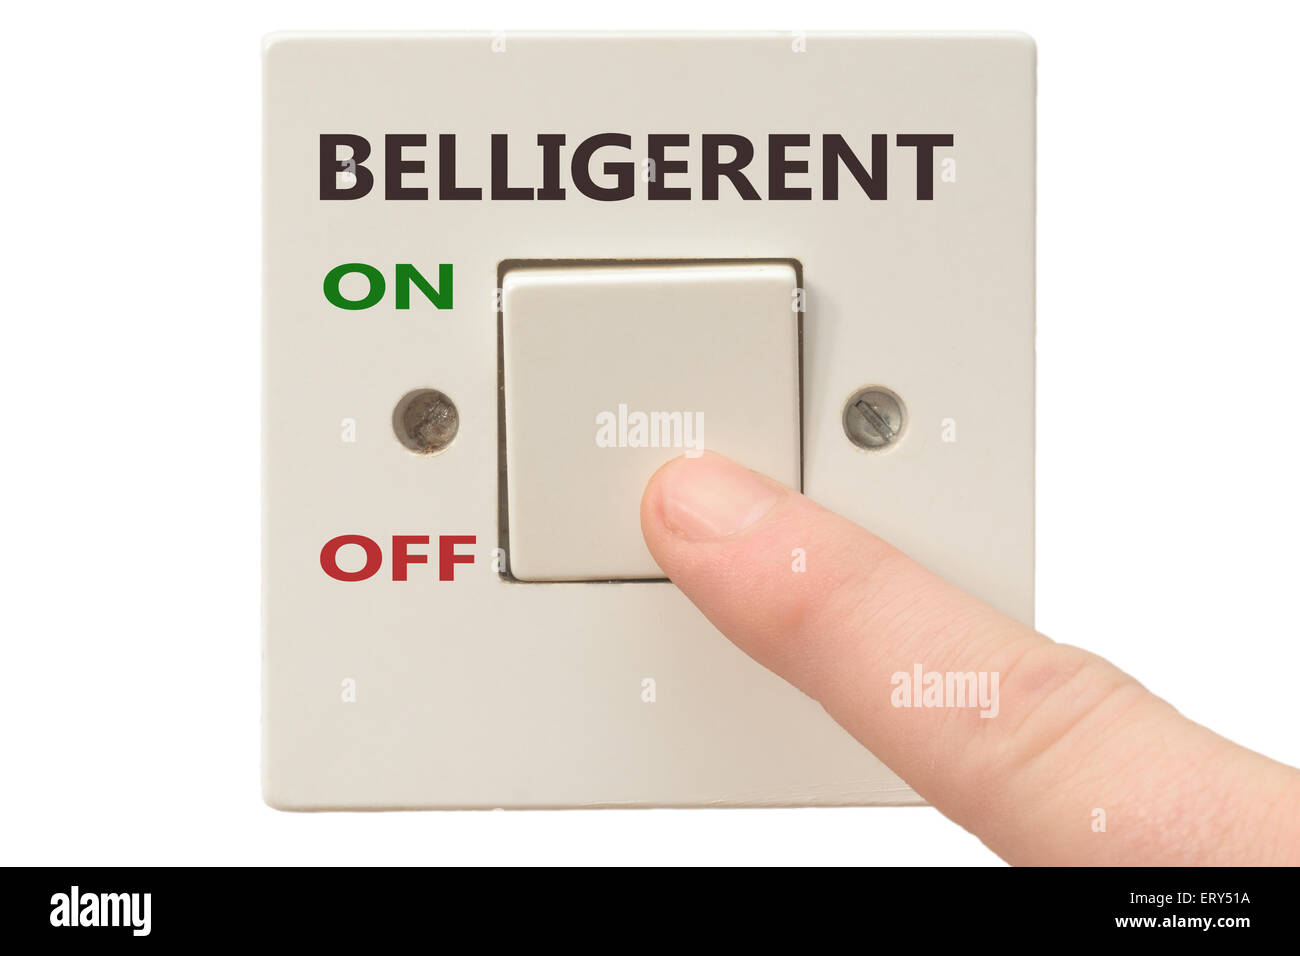 Turning off Belligerent with finger on electrical switch - Stock Image